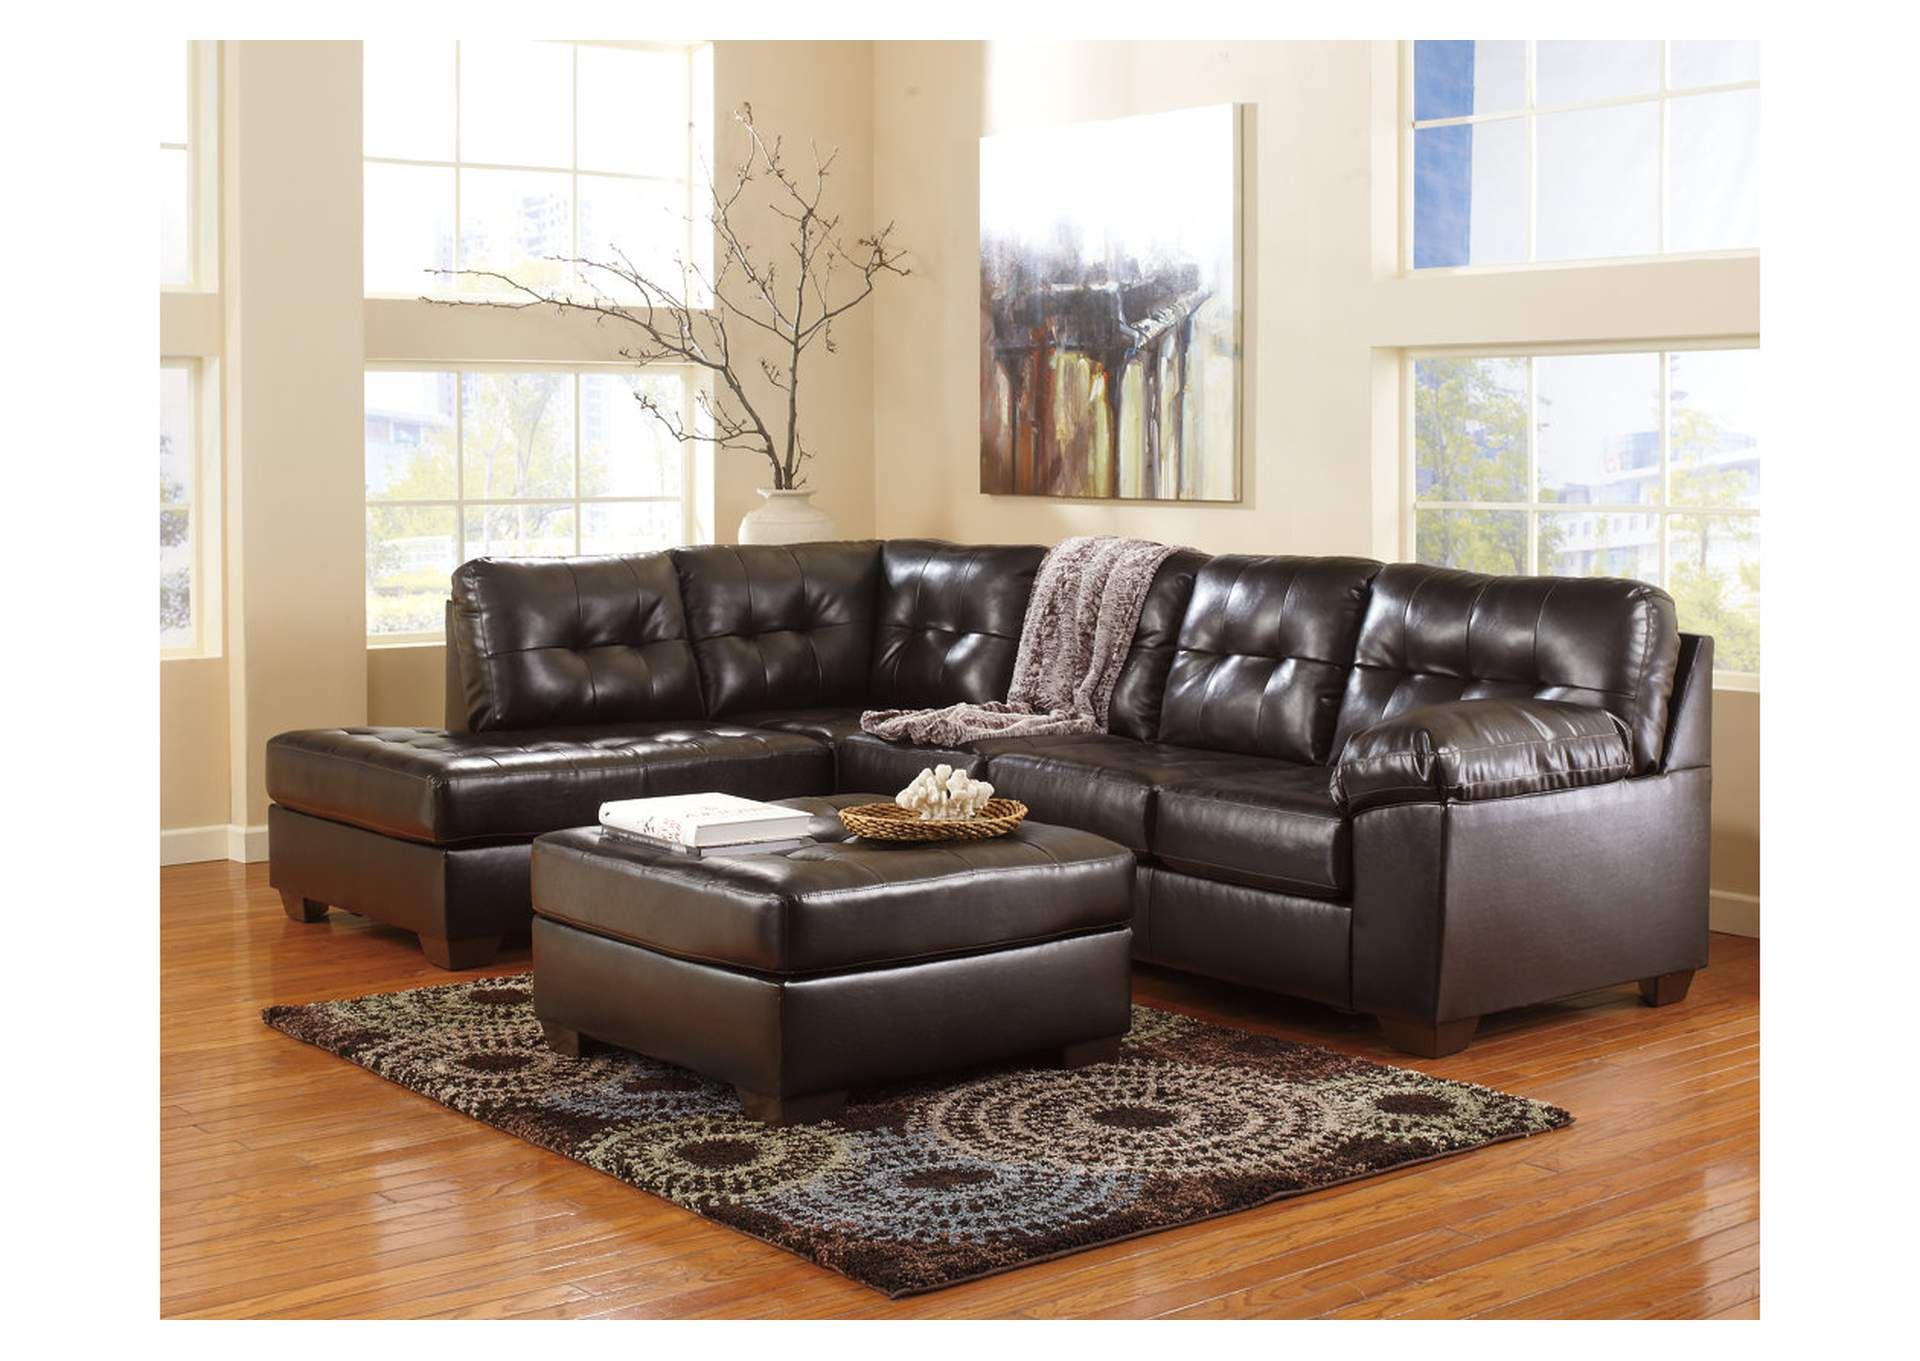 Alliston DuraBlend Chocolate Left Arm Facing Chaise End Sectional & Oversized Accent Ottoman,Signature Design by Ashley